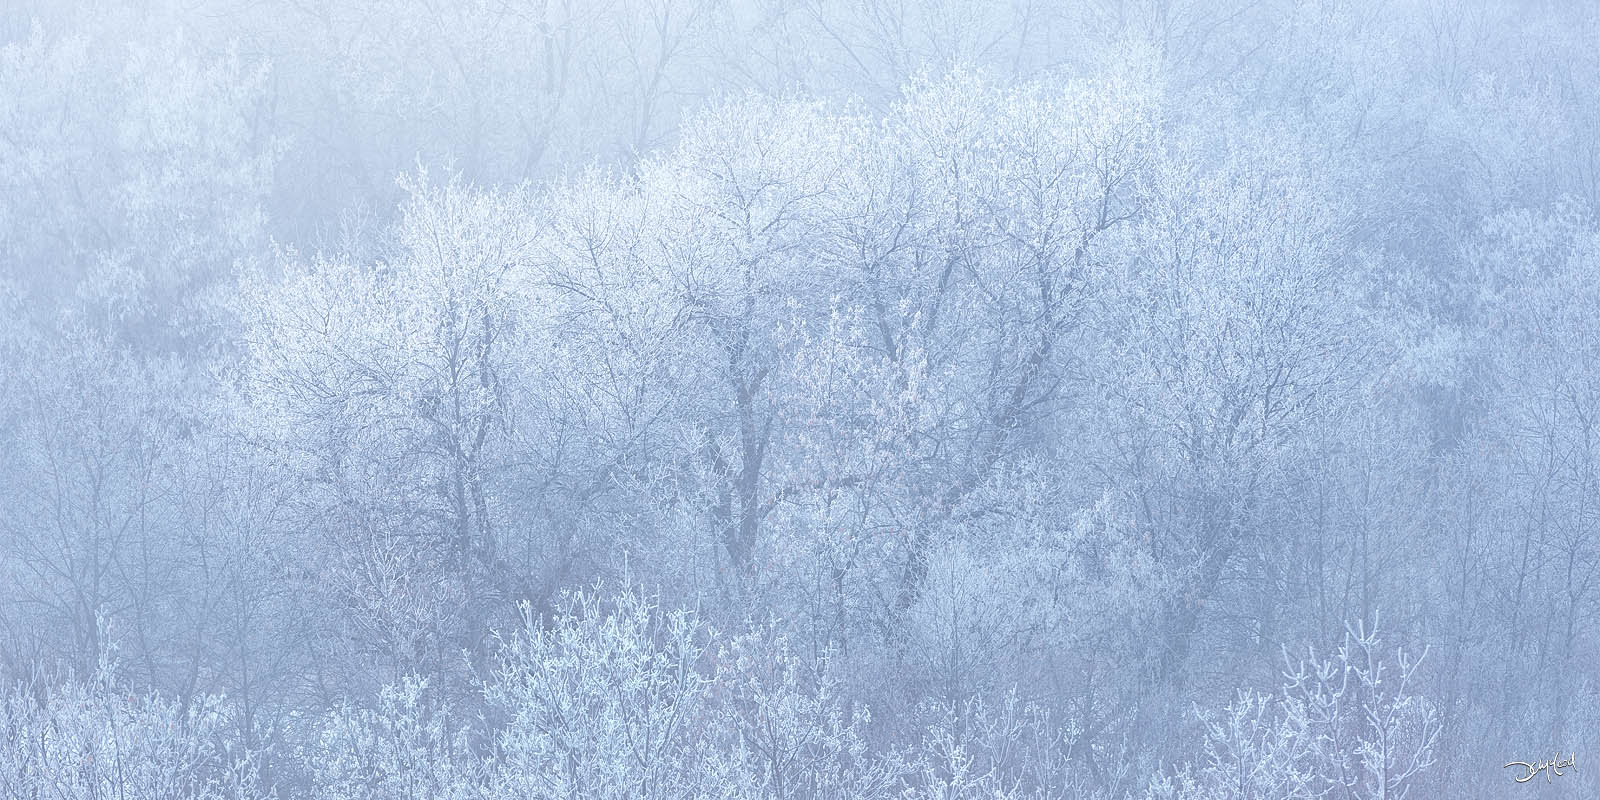 Panorama view of frosty trees and fog in Cranberry Flats, SK, Canada.